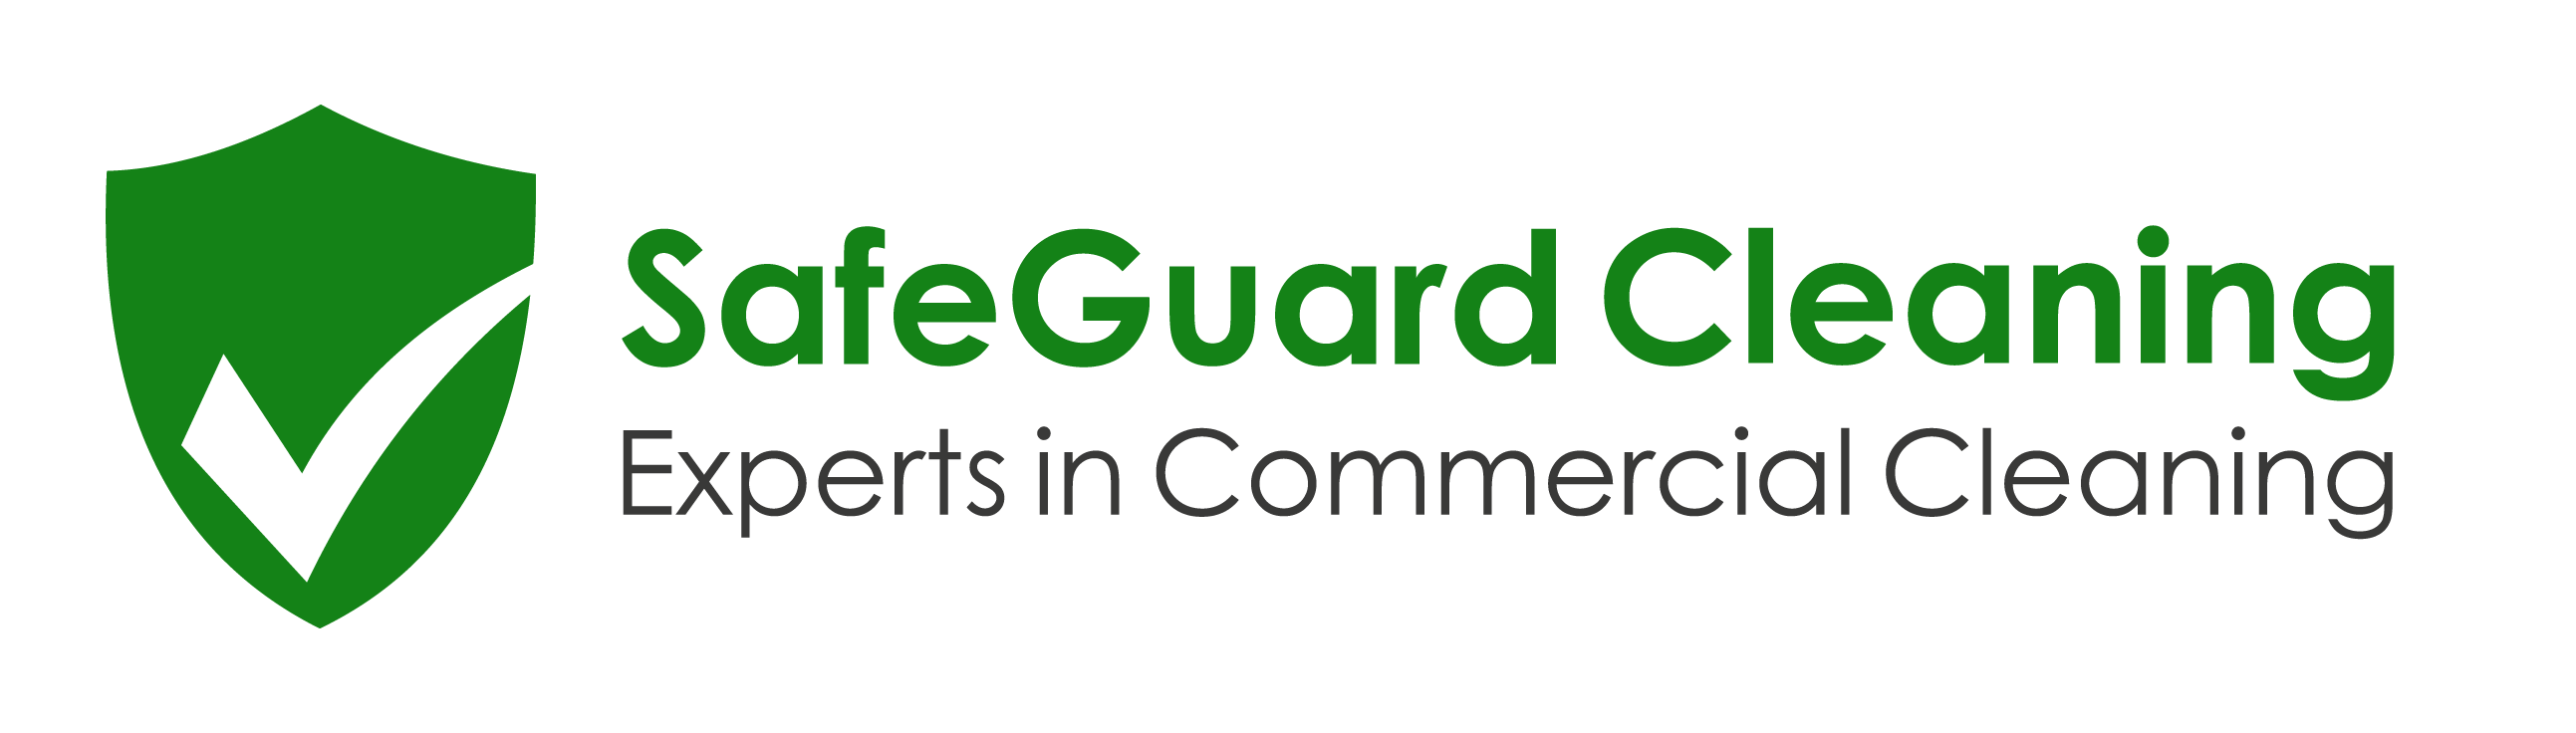 SafeGuard Cleaning